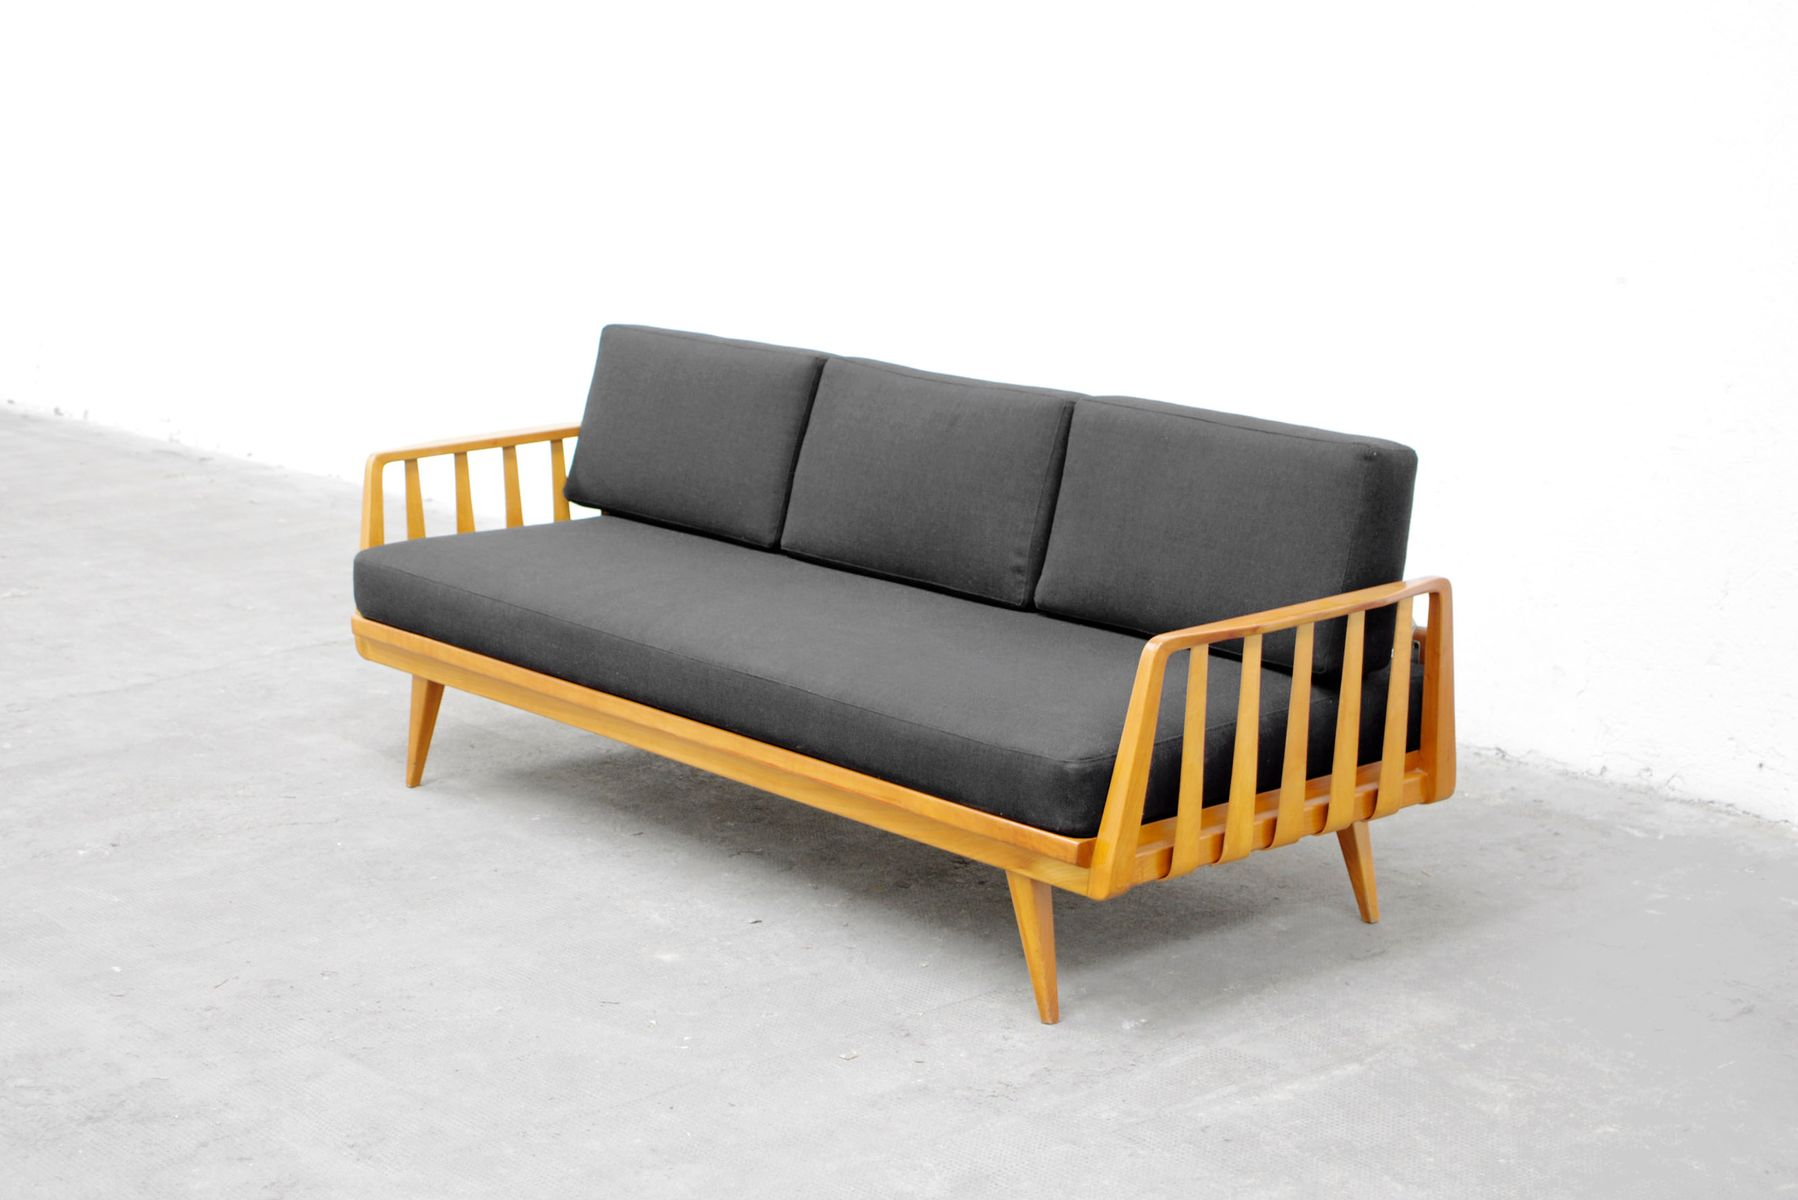 Sofa Daybed By Walter Knoll For Knoll Antimott 1950 For